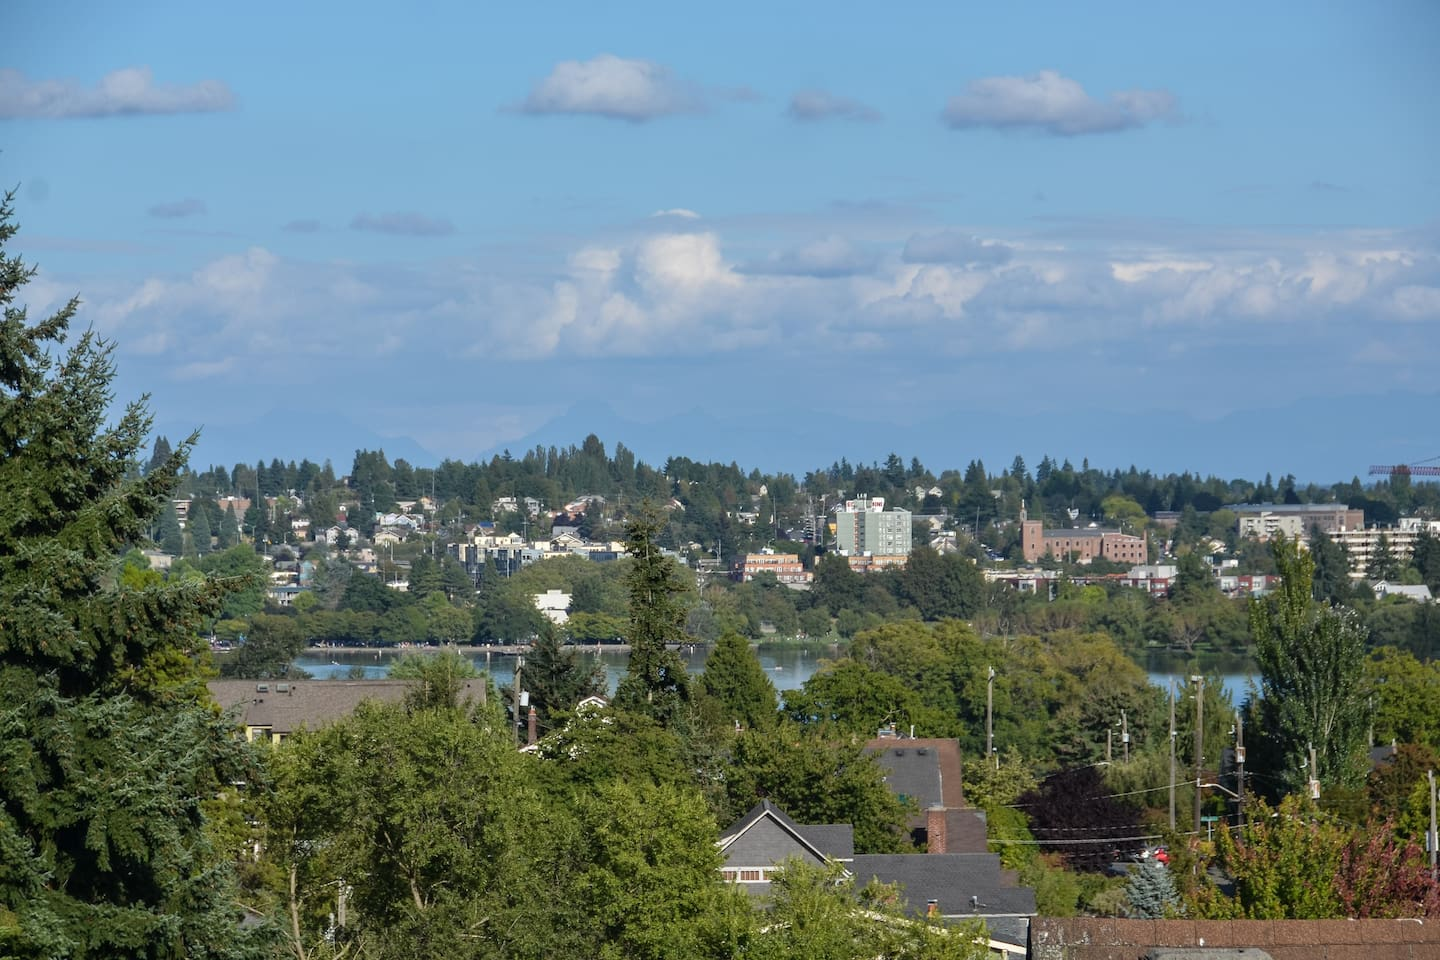 View of greenlake from upper deck - mountains are there today!